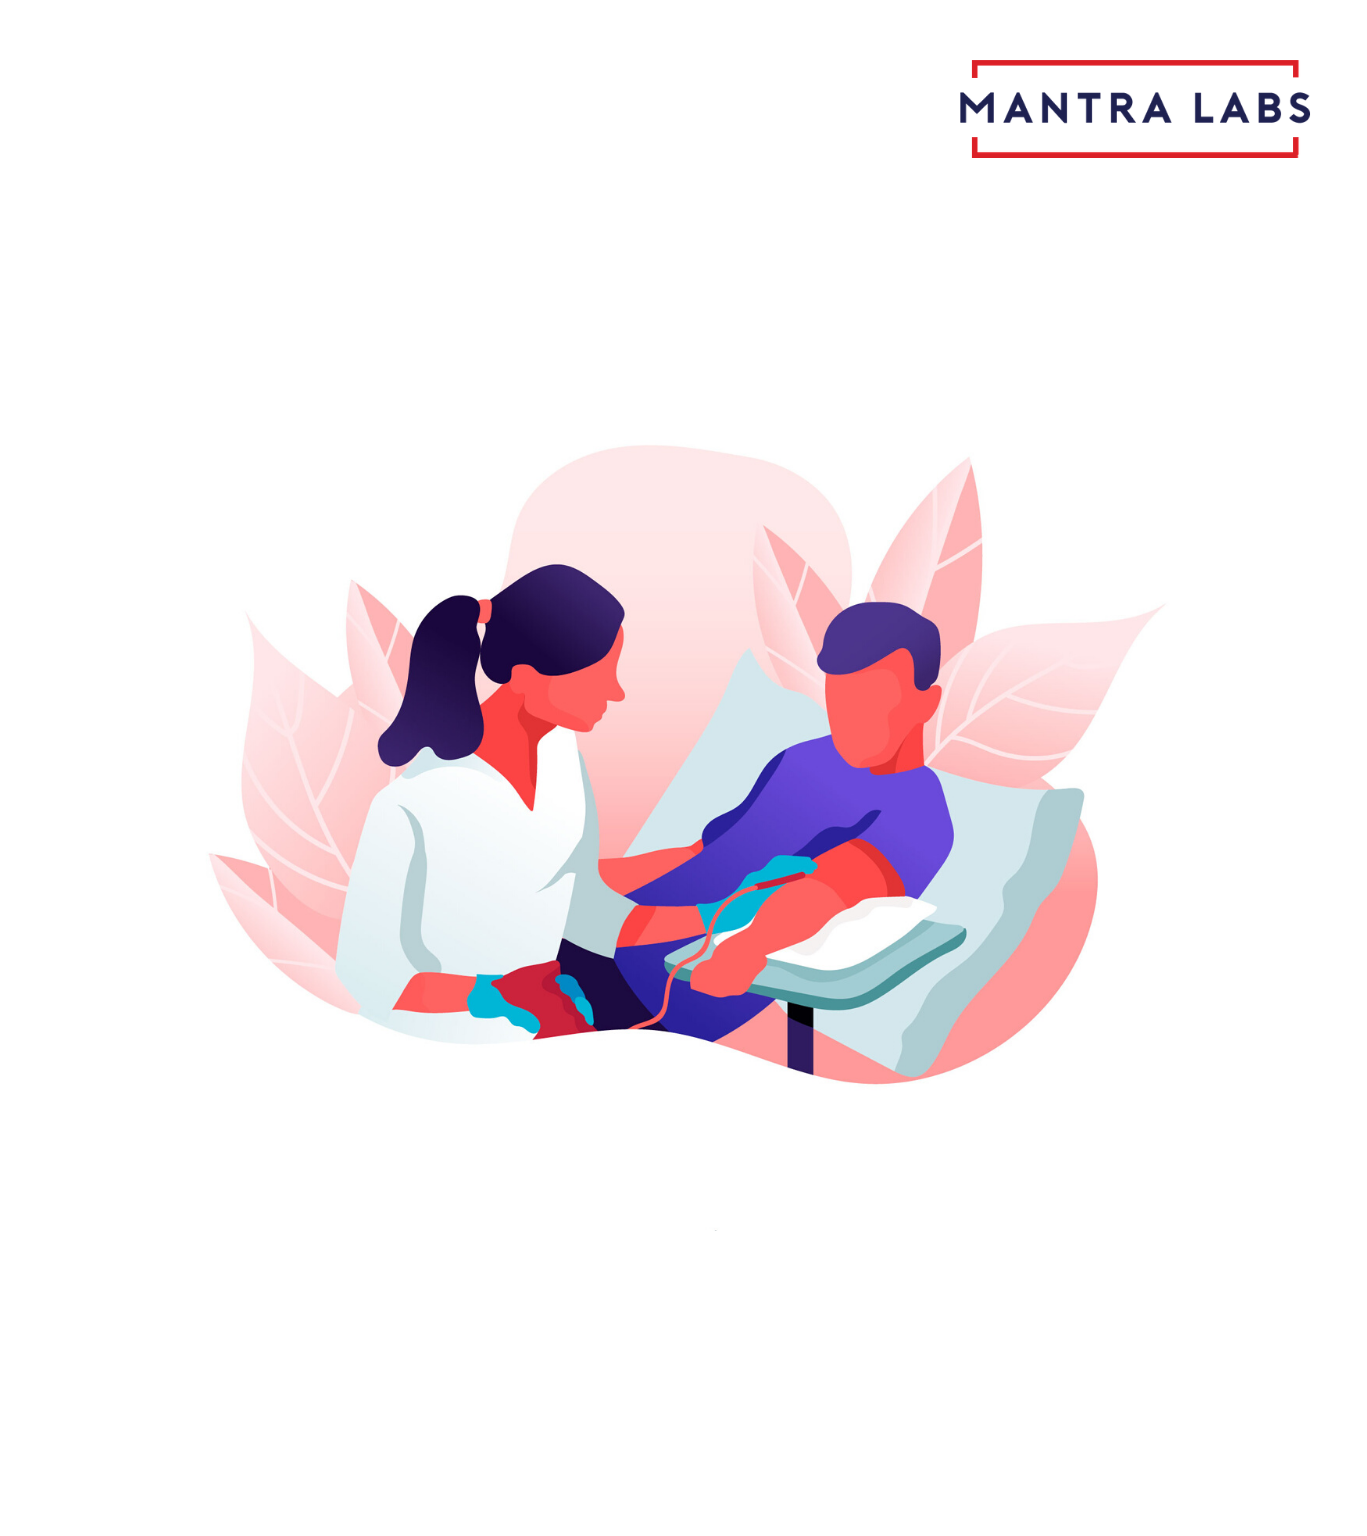 Blood donation camp at Mantra Labs Featured Image